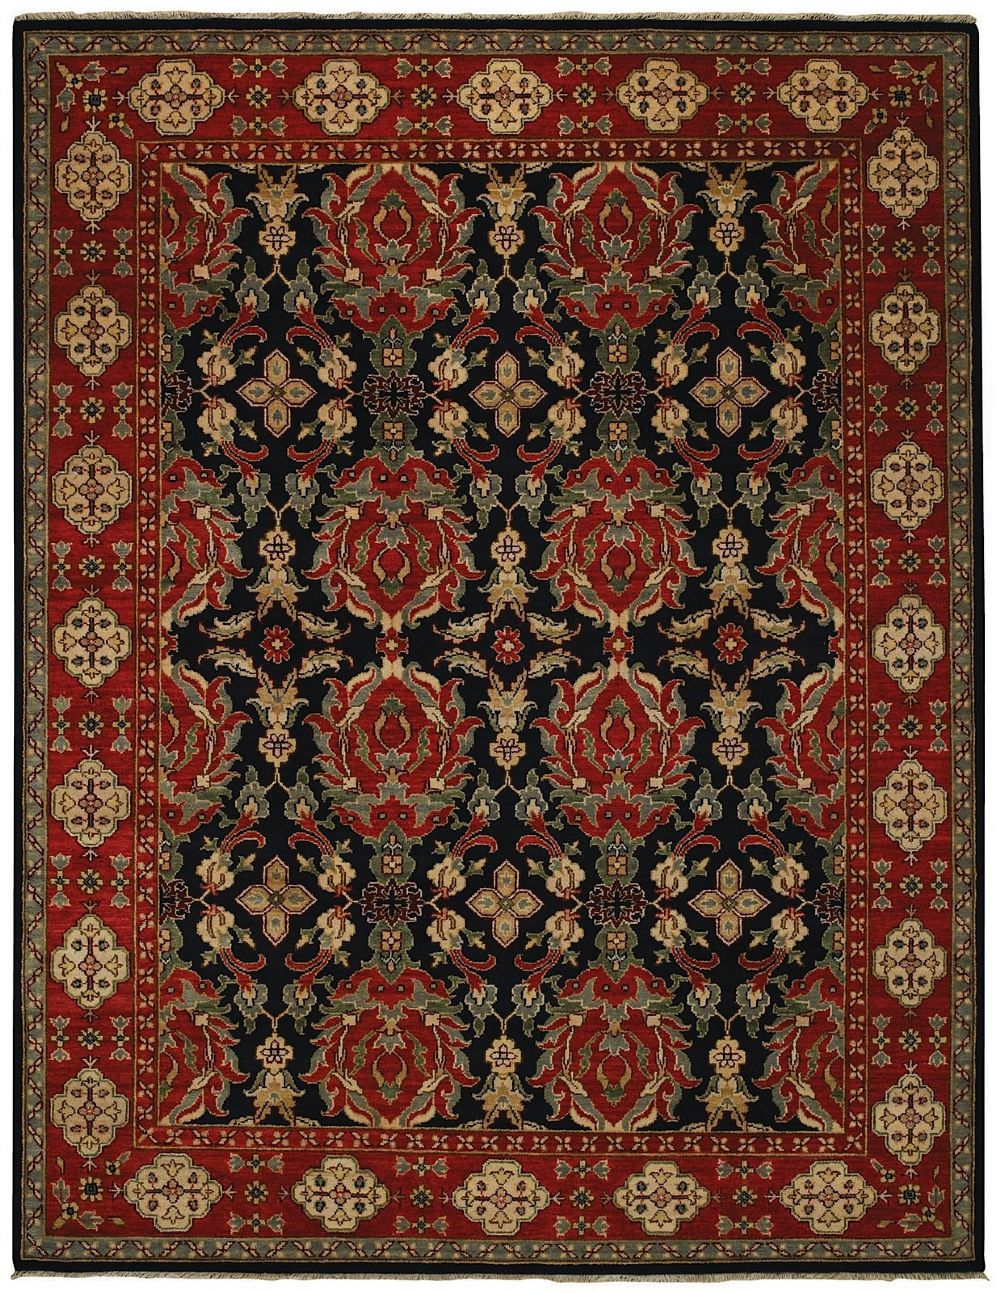 capel bellevelle-fereghan traditional area rug collection